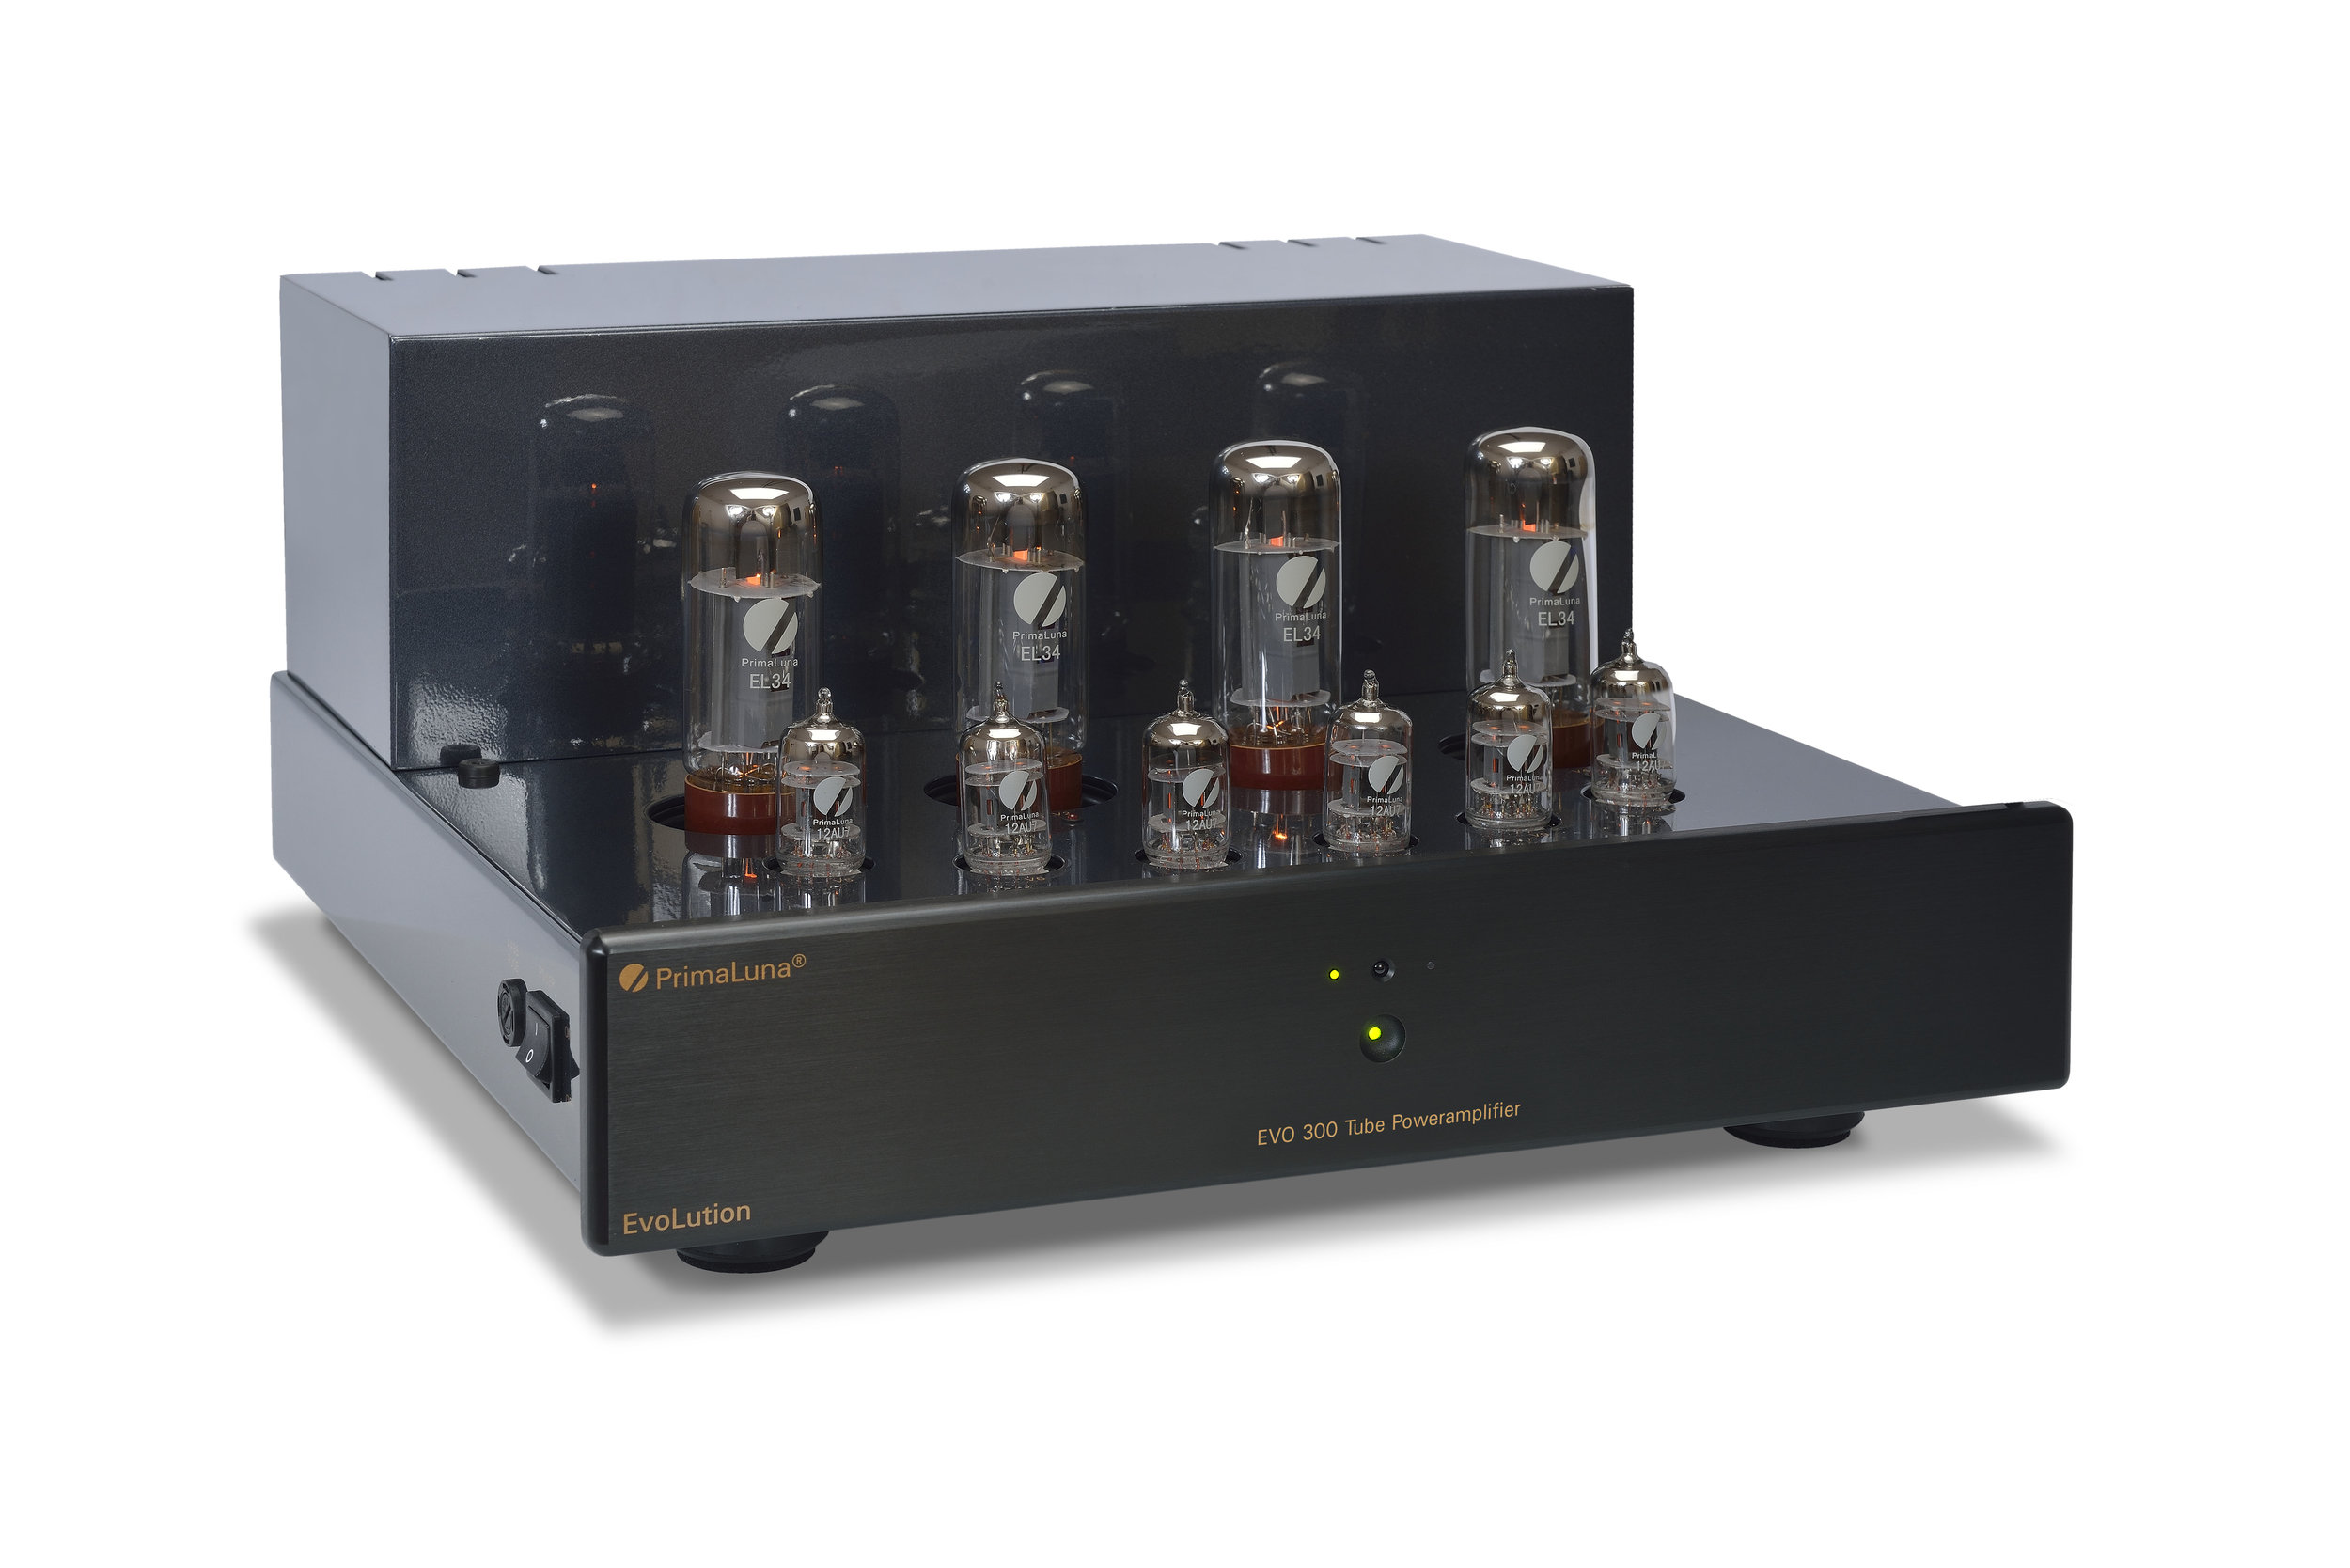 025b - PrimaLuna Evo 300 Tube Poweramplifier - black - slanted - without cage - white background.jpg